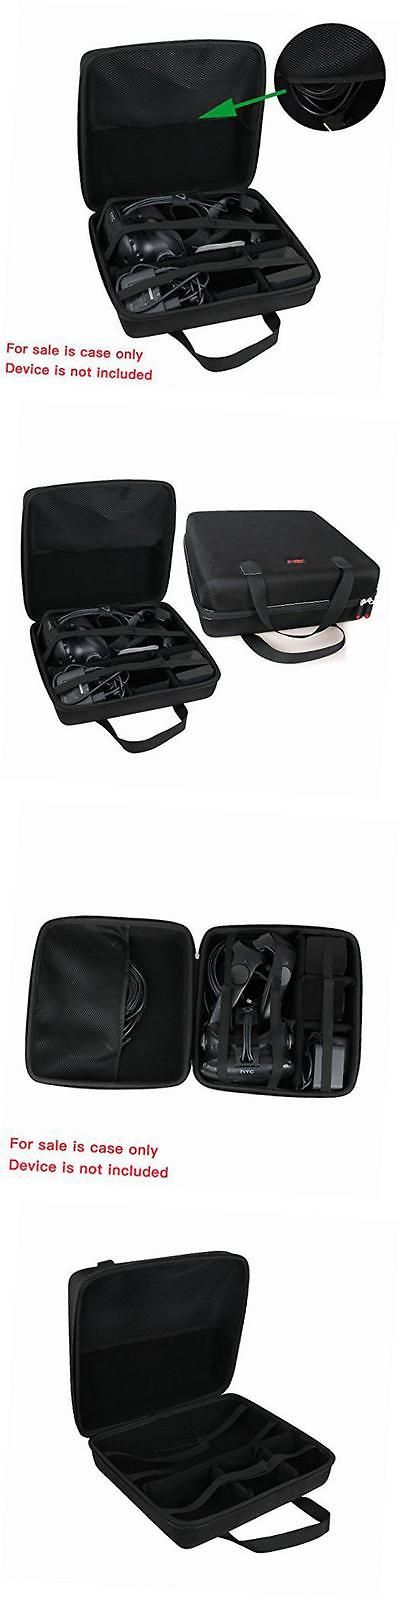 PC and Console VR Headsets: Hard Eva Travel Case For Htc Vive - Vr Virtual Reality System By -> BUY IT NOW ONLY: $63.93 on eBay!